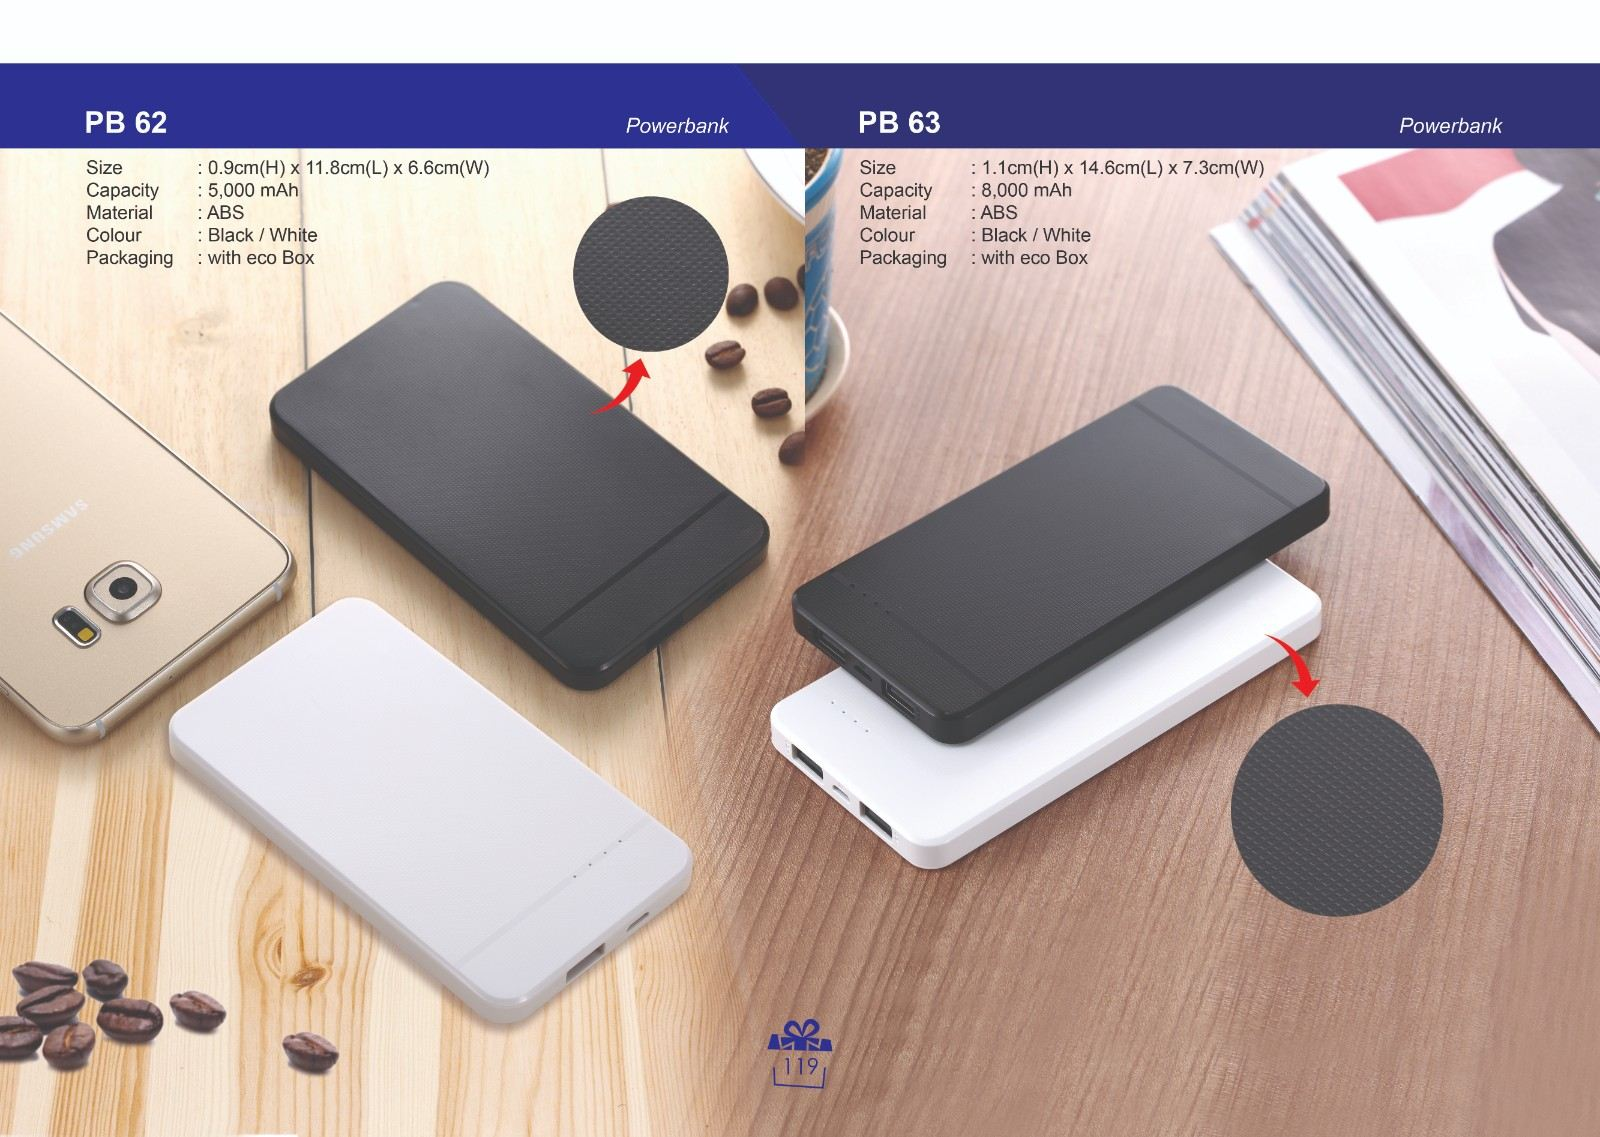 PB 62 & PB 63 Powerbank